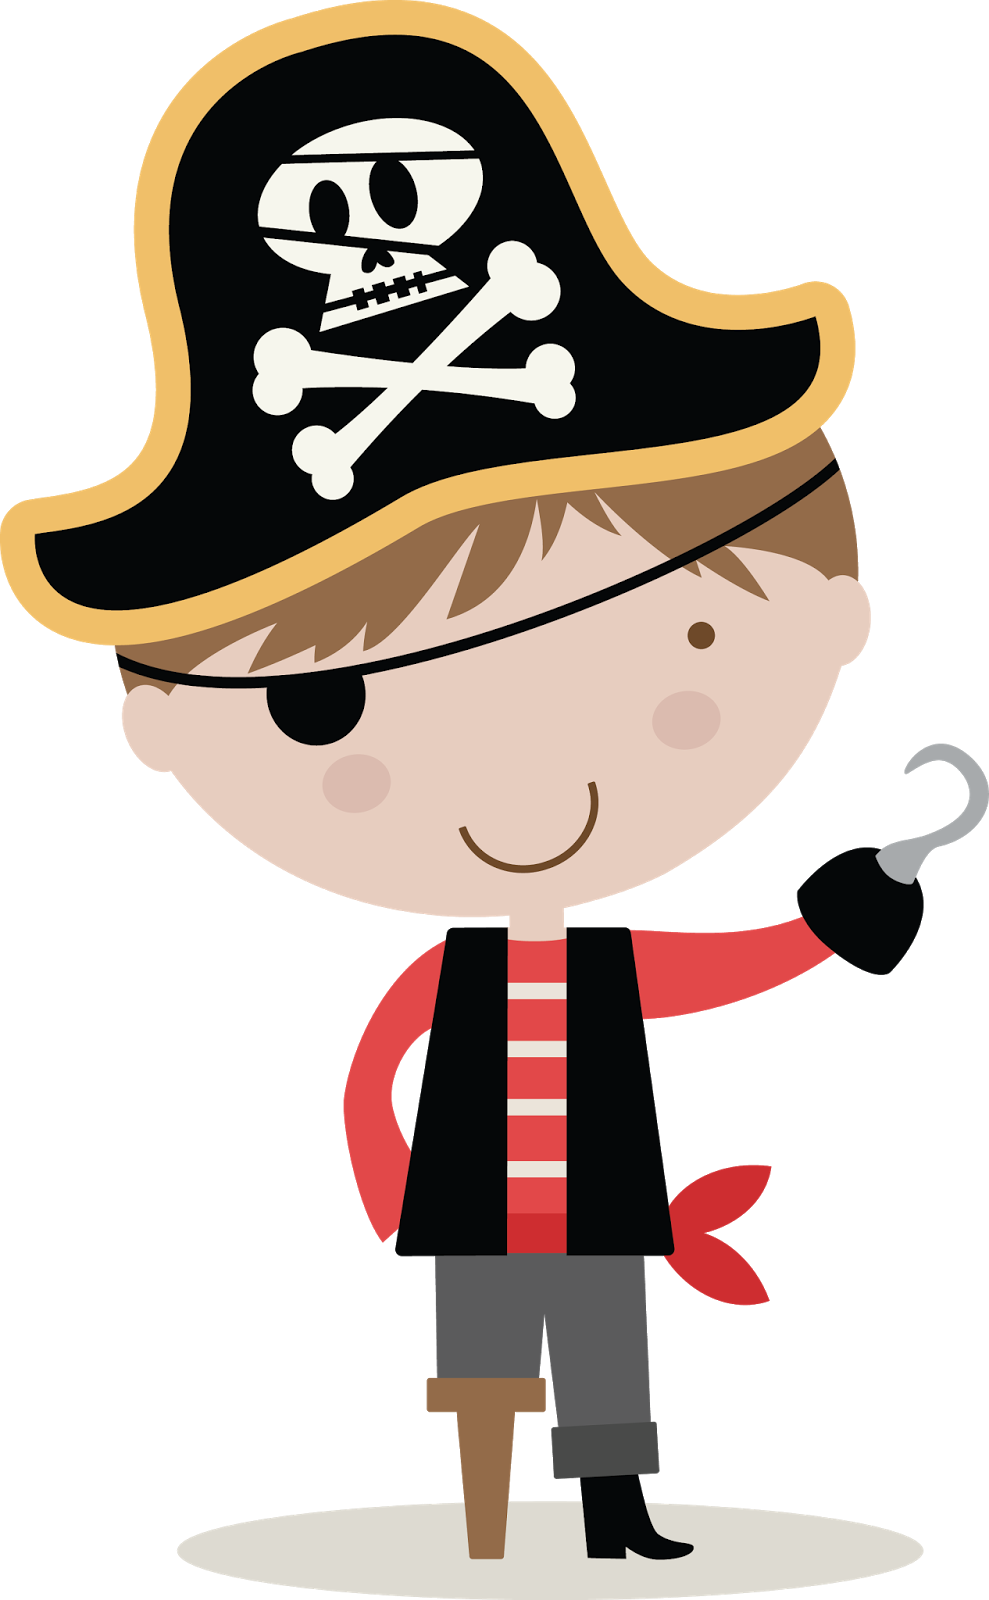 Pirate clipart png. Image purepng free transparent